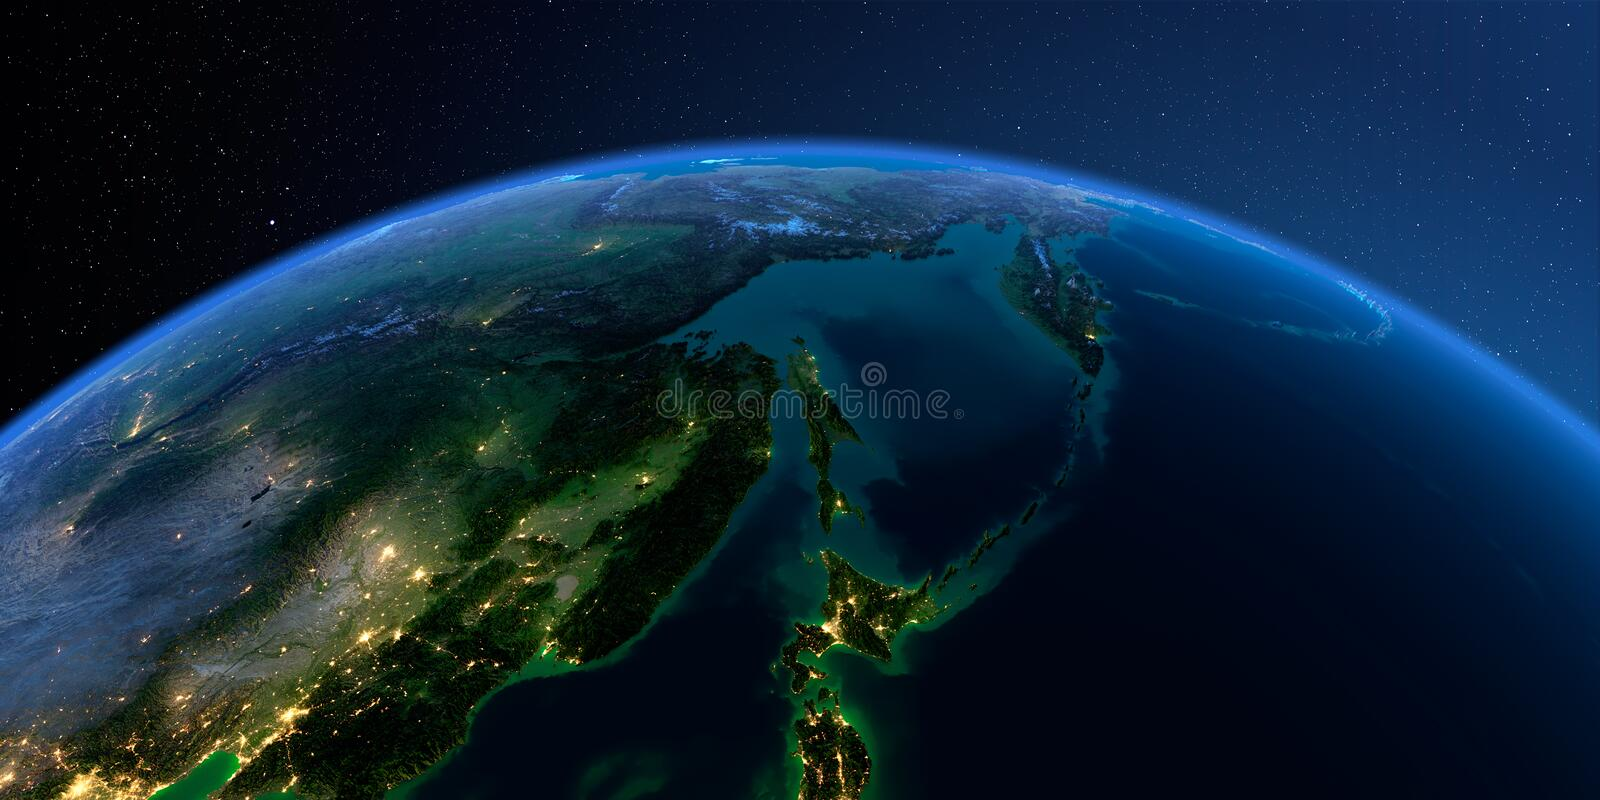 Detailed Earth. Russian Far East, the Sea of Okhotsk on a moonlit night vector illustration